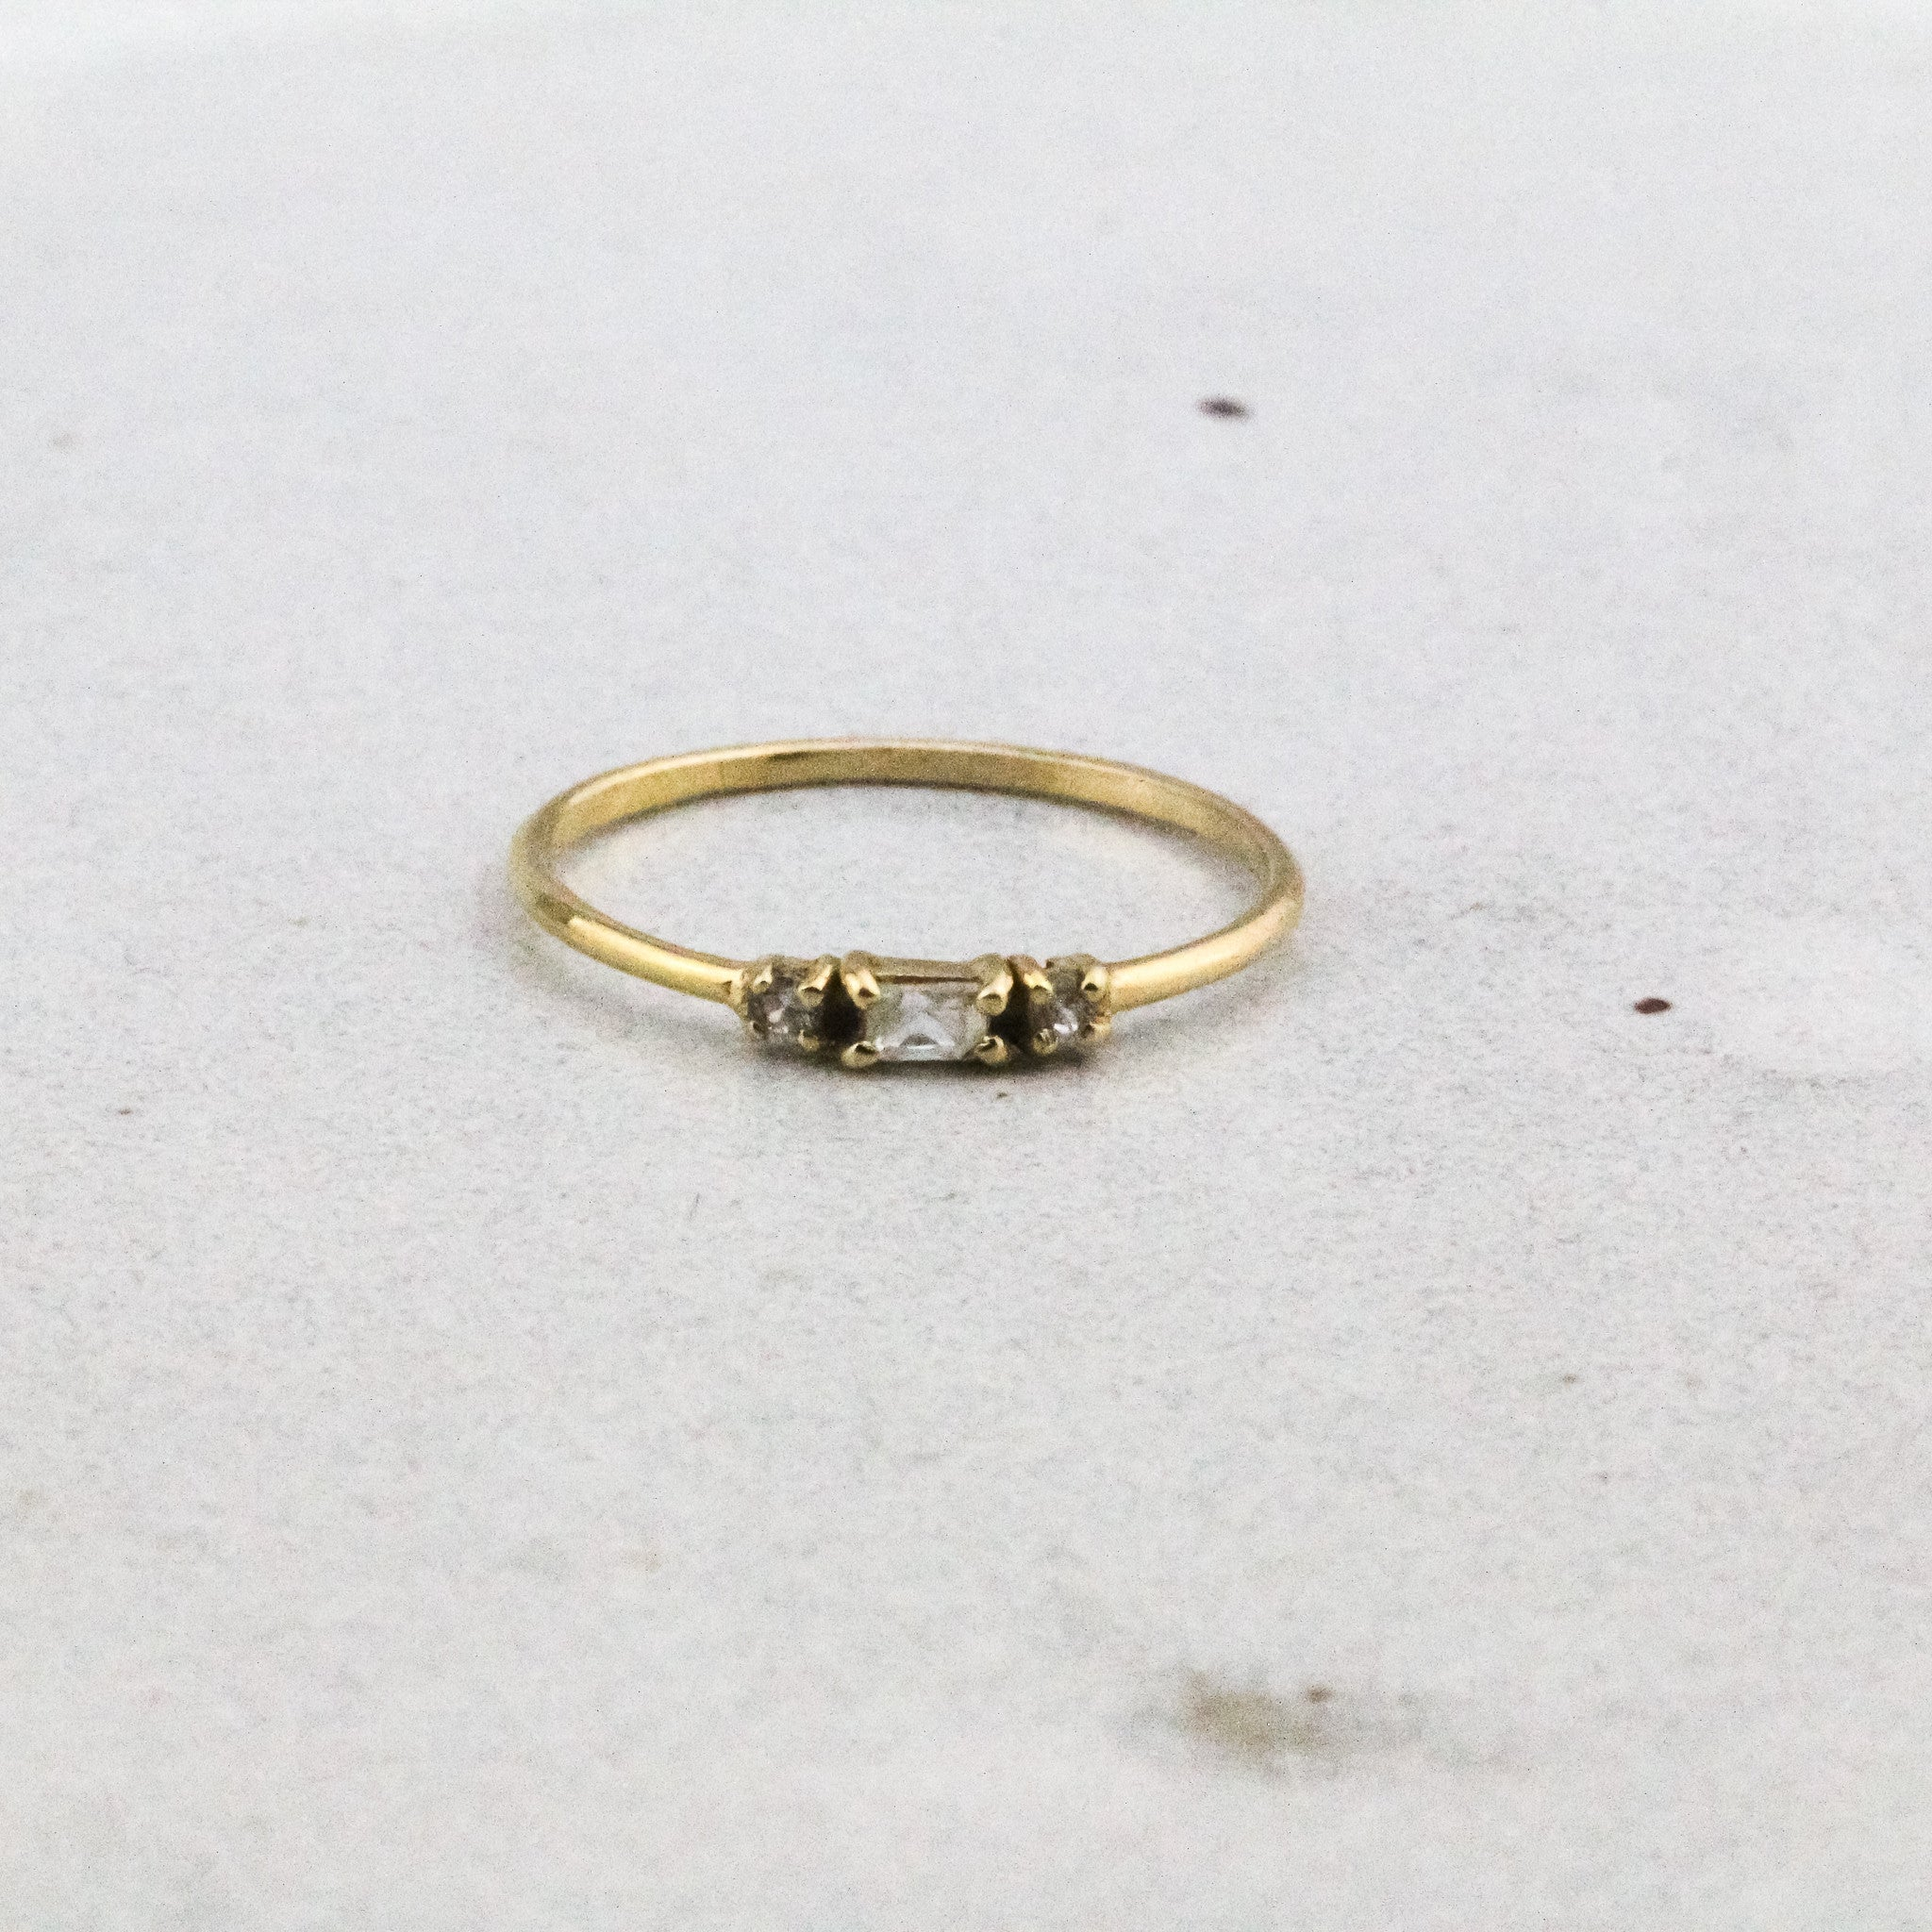 Petite Elevation Ring - Zircon